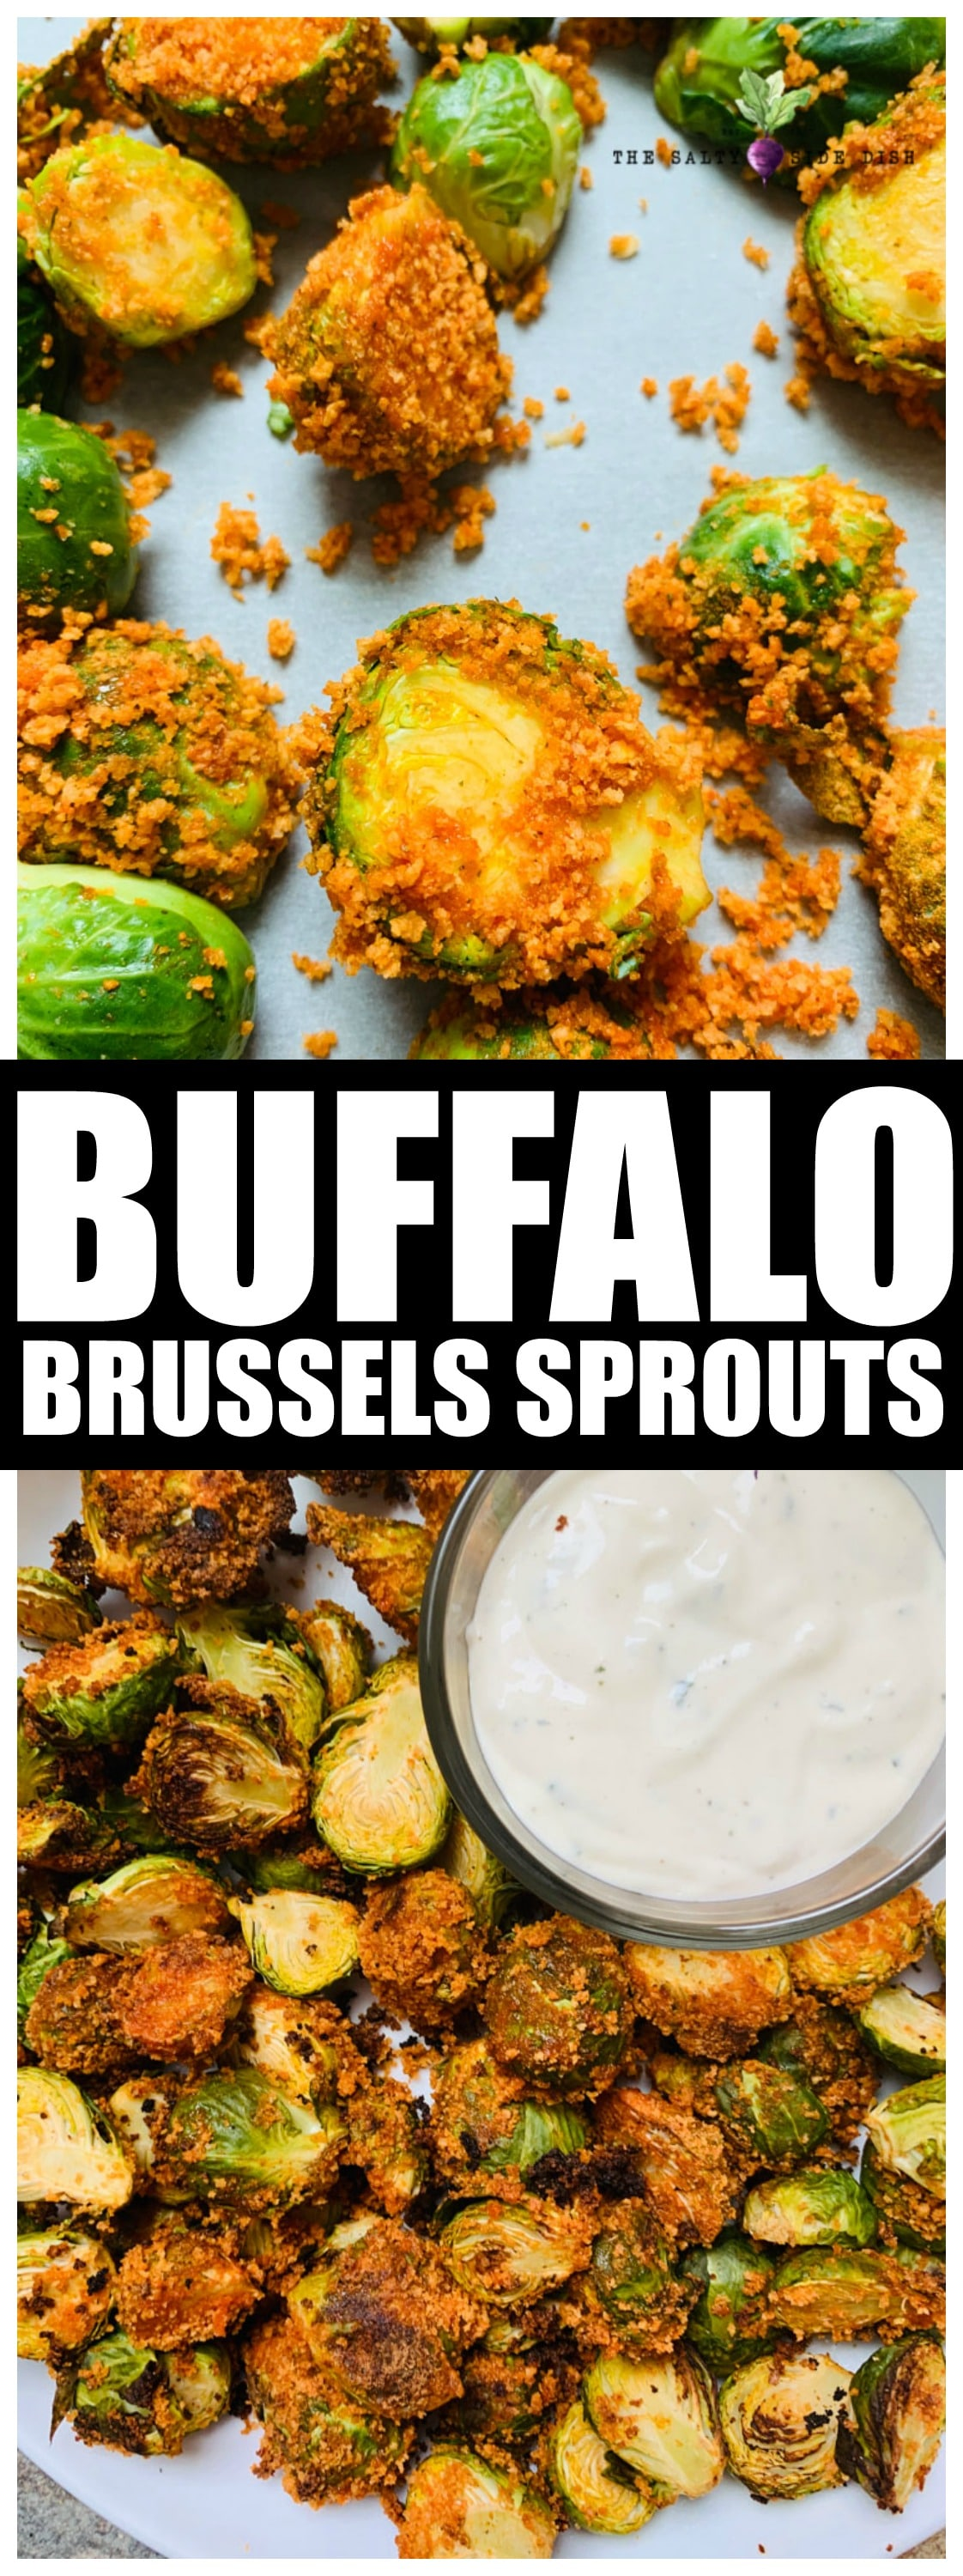 Buffalo Brussels Sprouts | Roasted Brussels Sprouts Crispy, Crunch, Spicy and PERFECT. #sidedish #appetizer #buffalo #dip #brusselssprouts #veggie